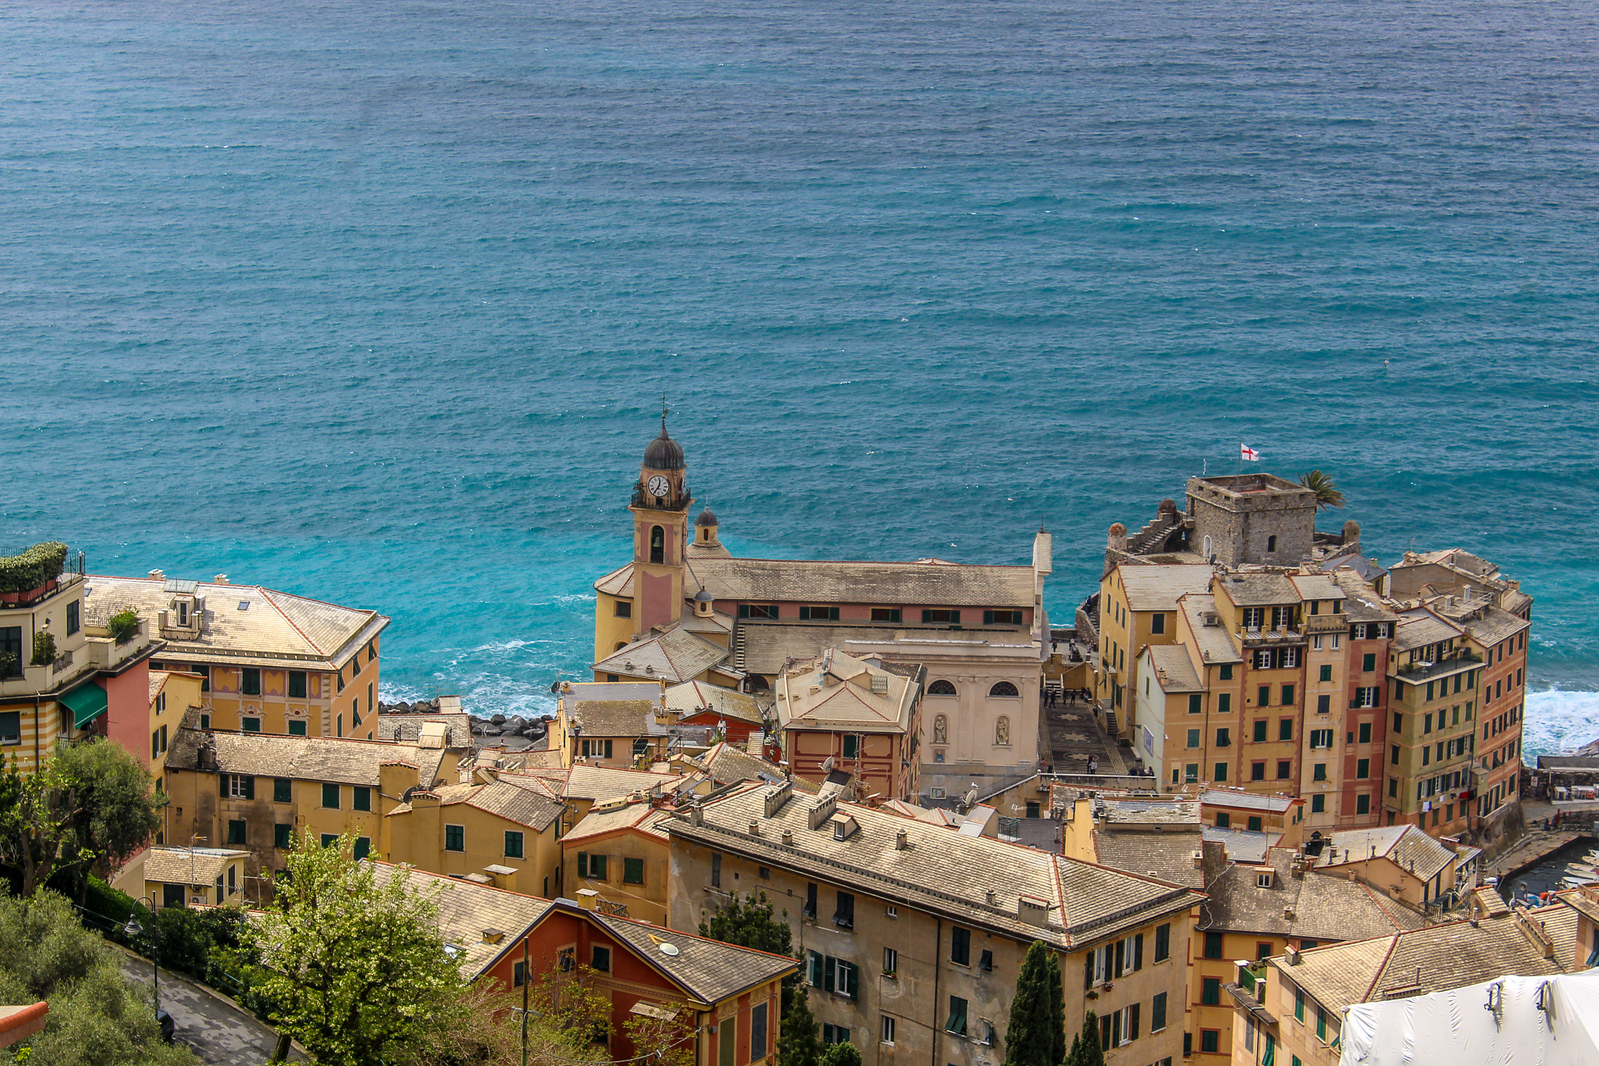 things to do in camogli: climb and savor the view